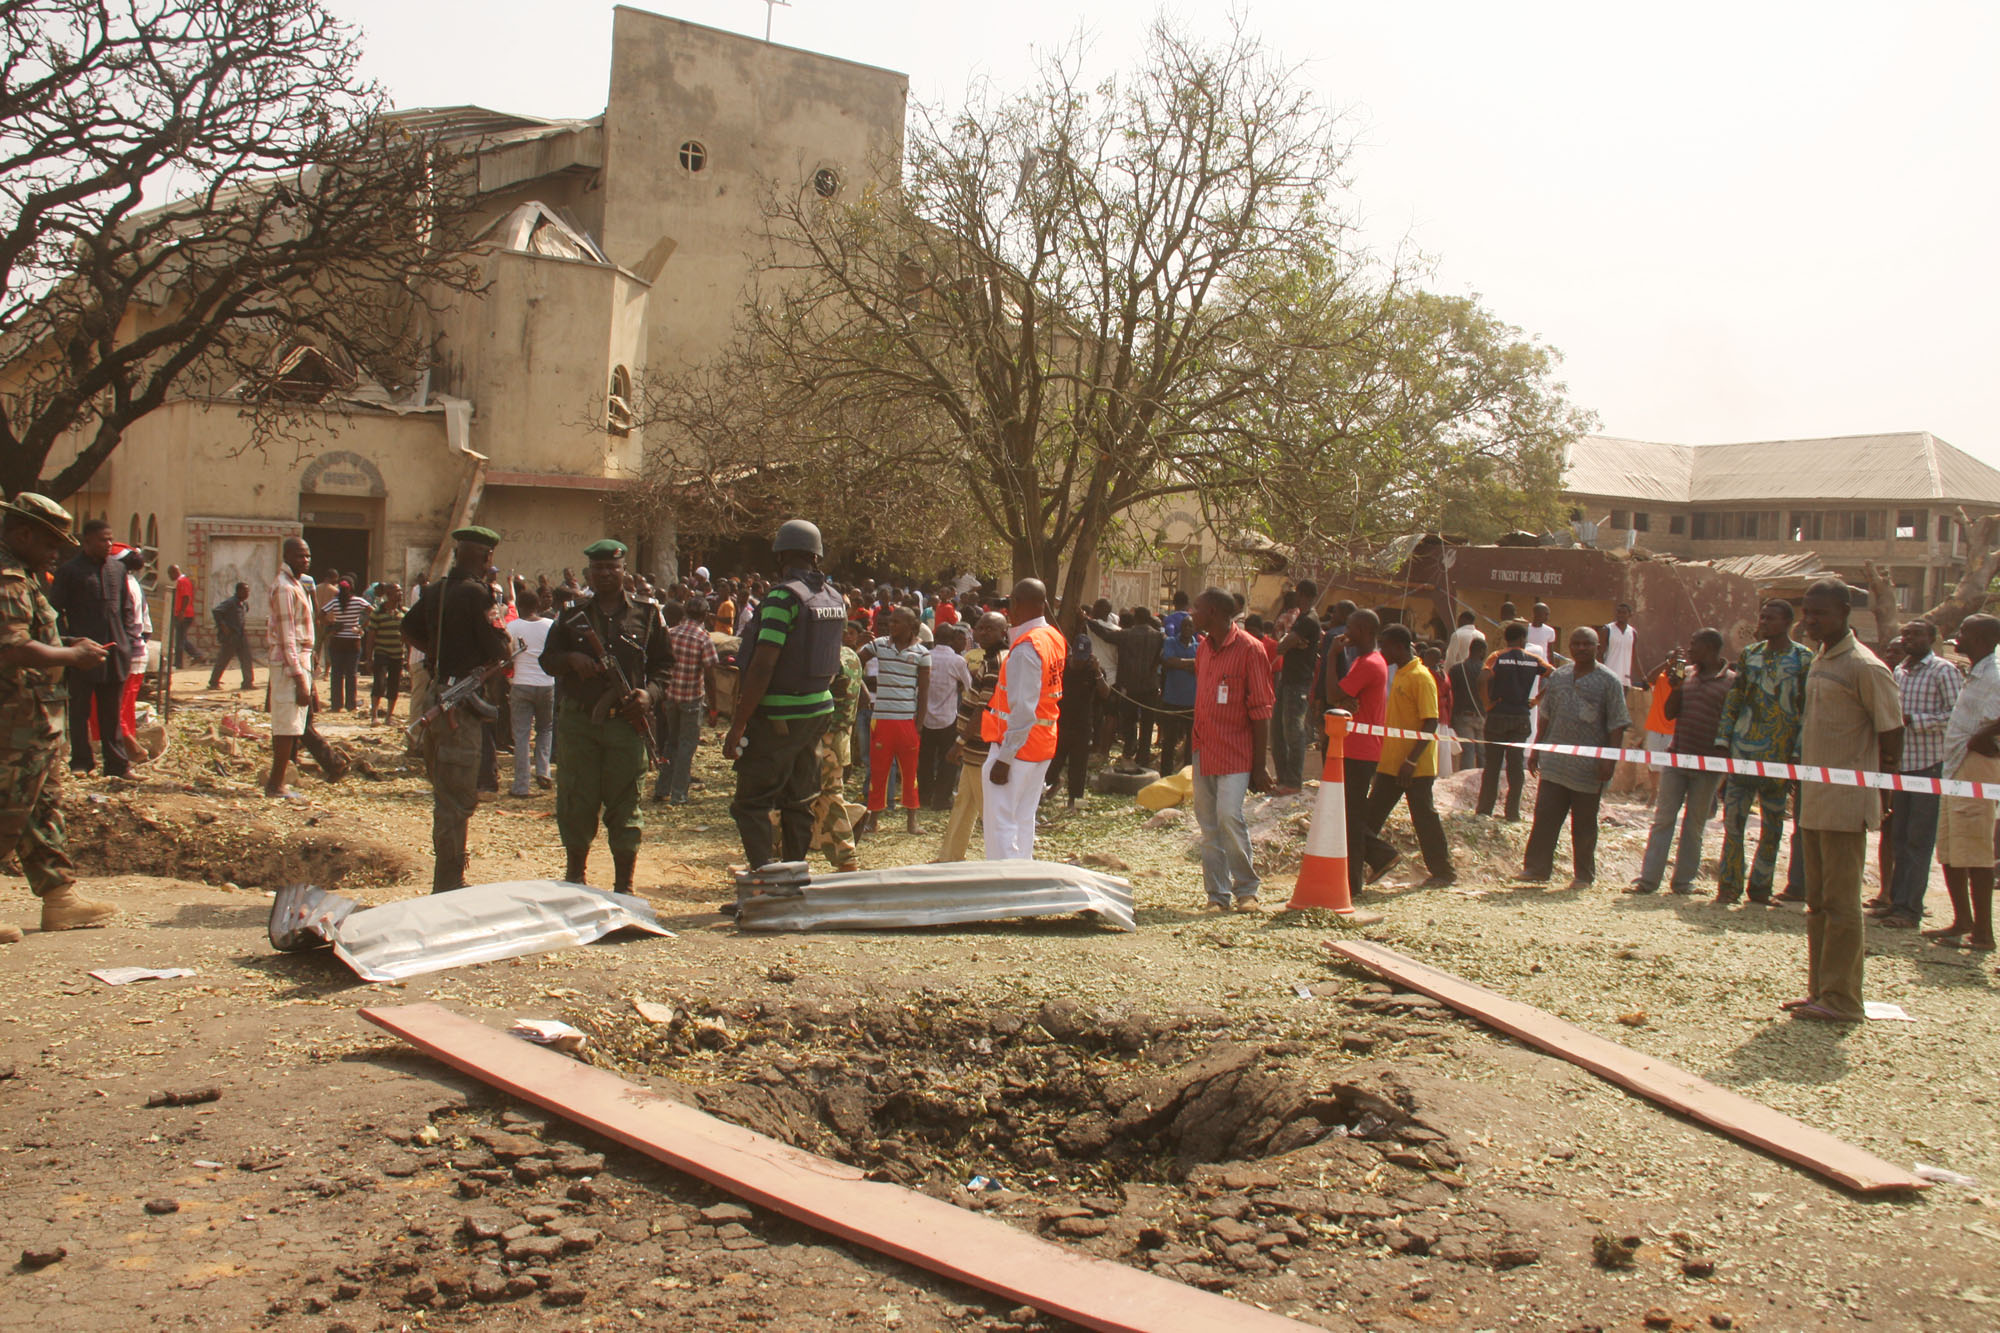 Islamists Torch At Least 68 Churches in Nigeria in One Month